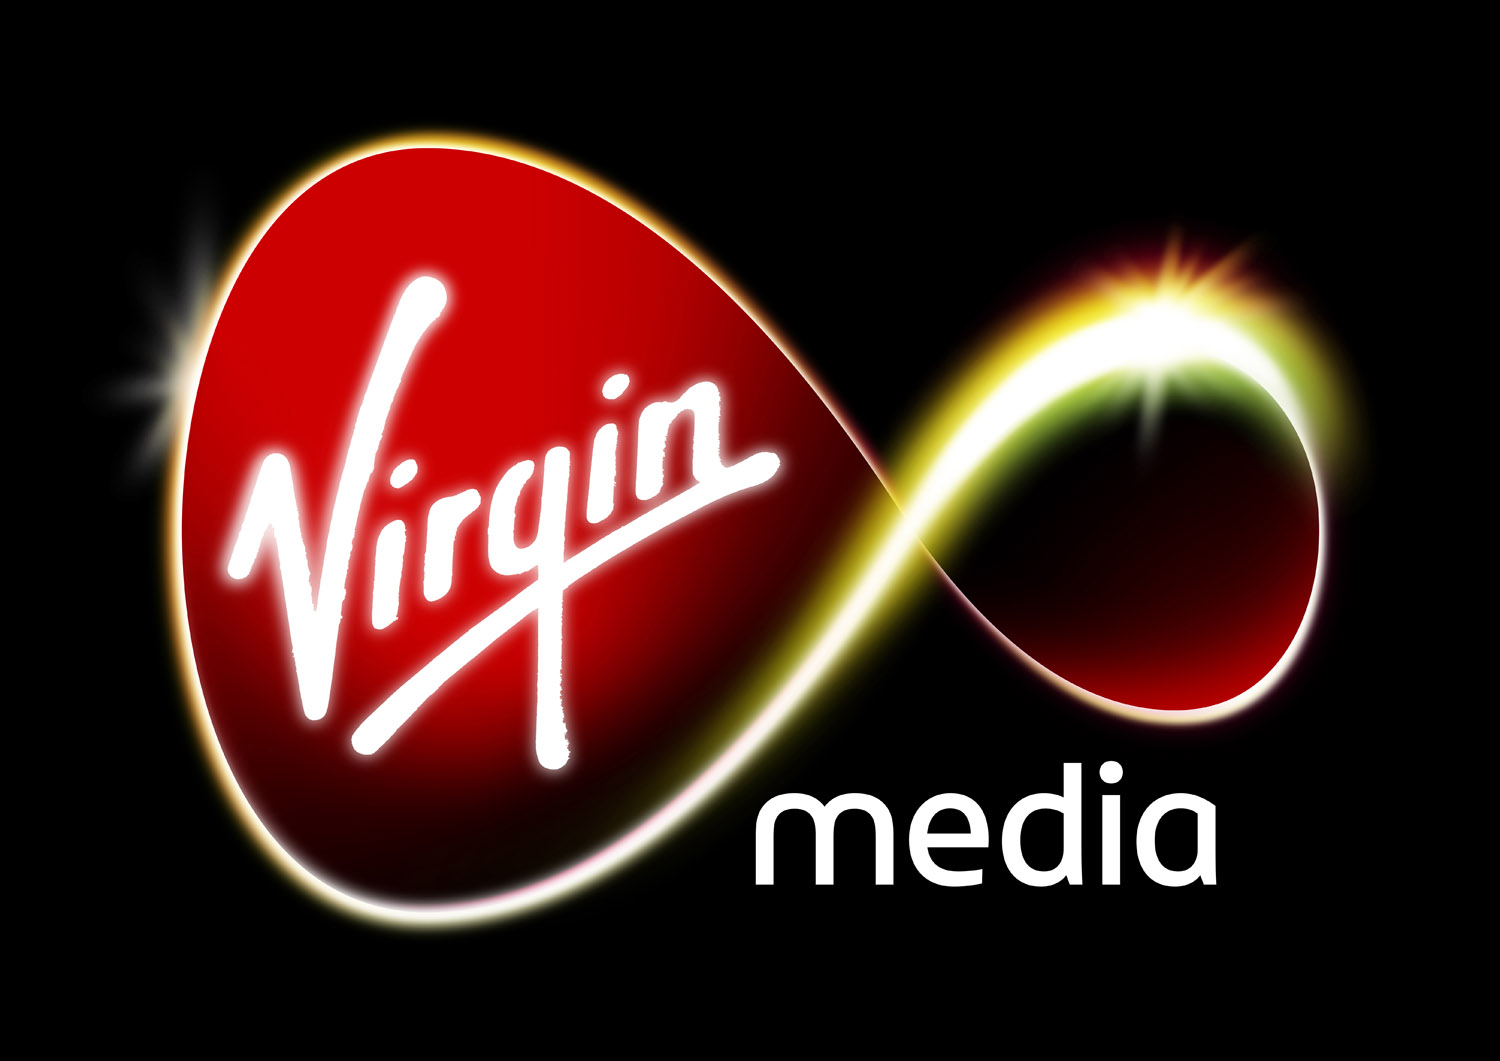 Virgin Media was fined £24,000